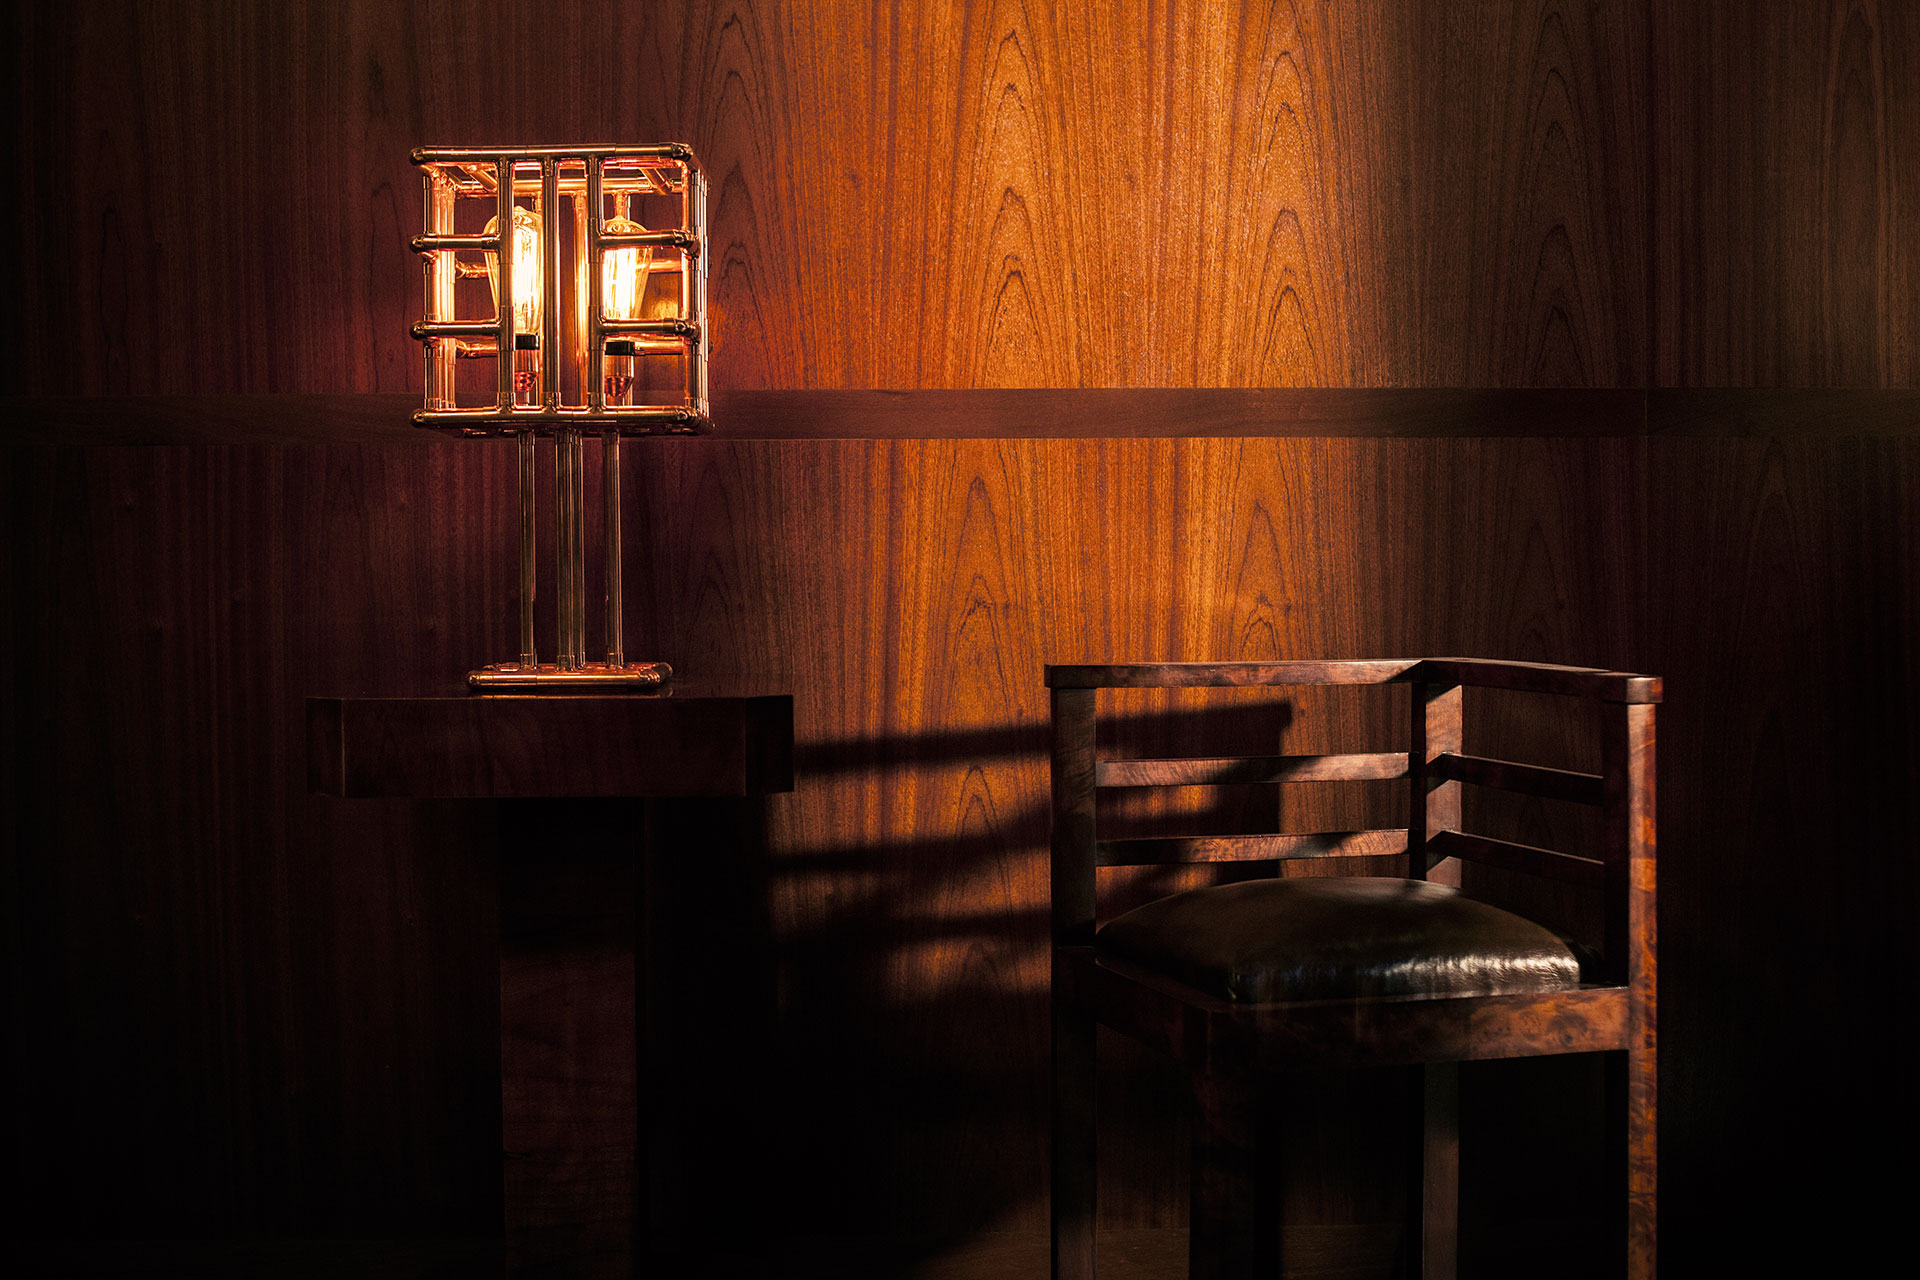 Decorative table lamp in trendy copper metal finish inspired by Art Deco design